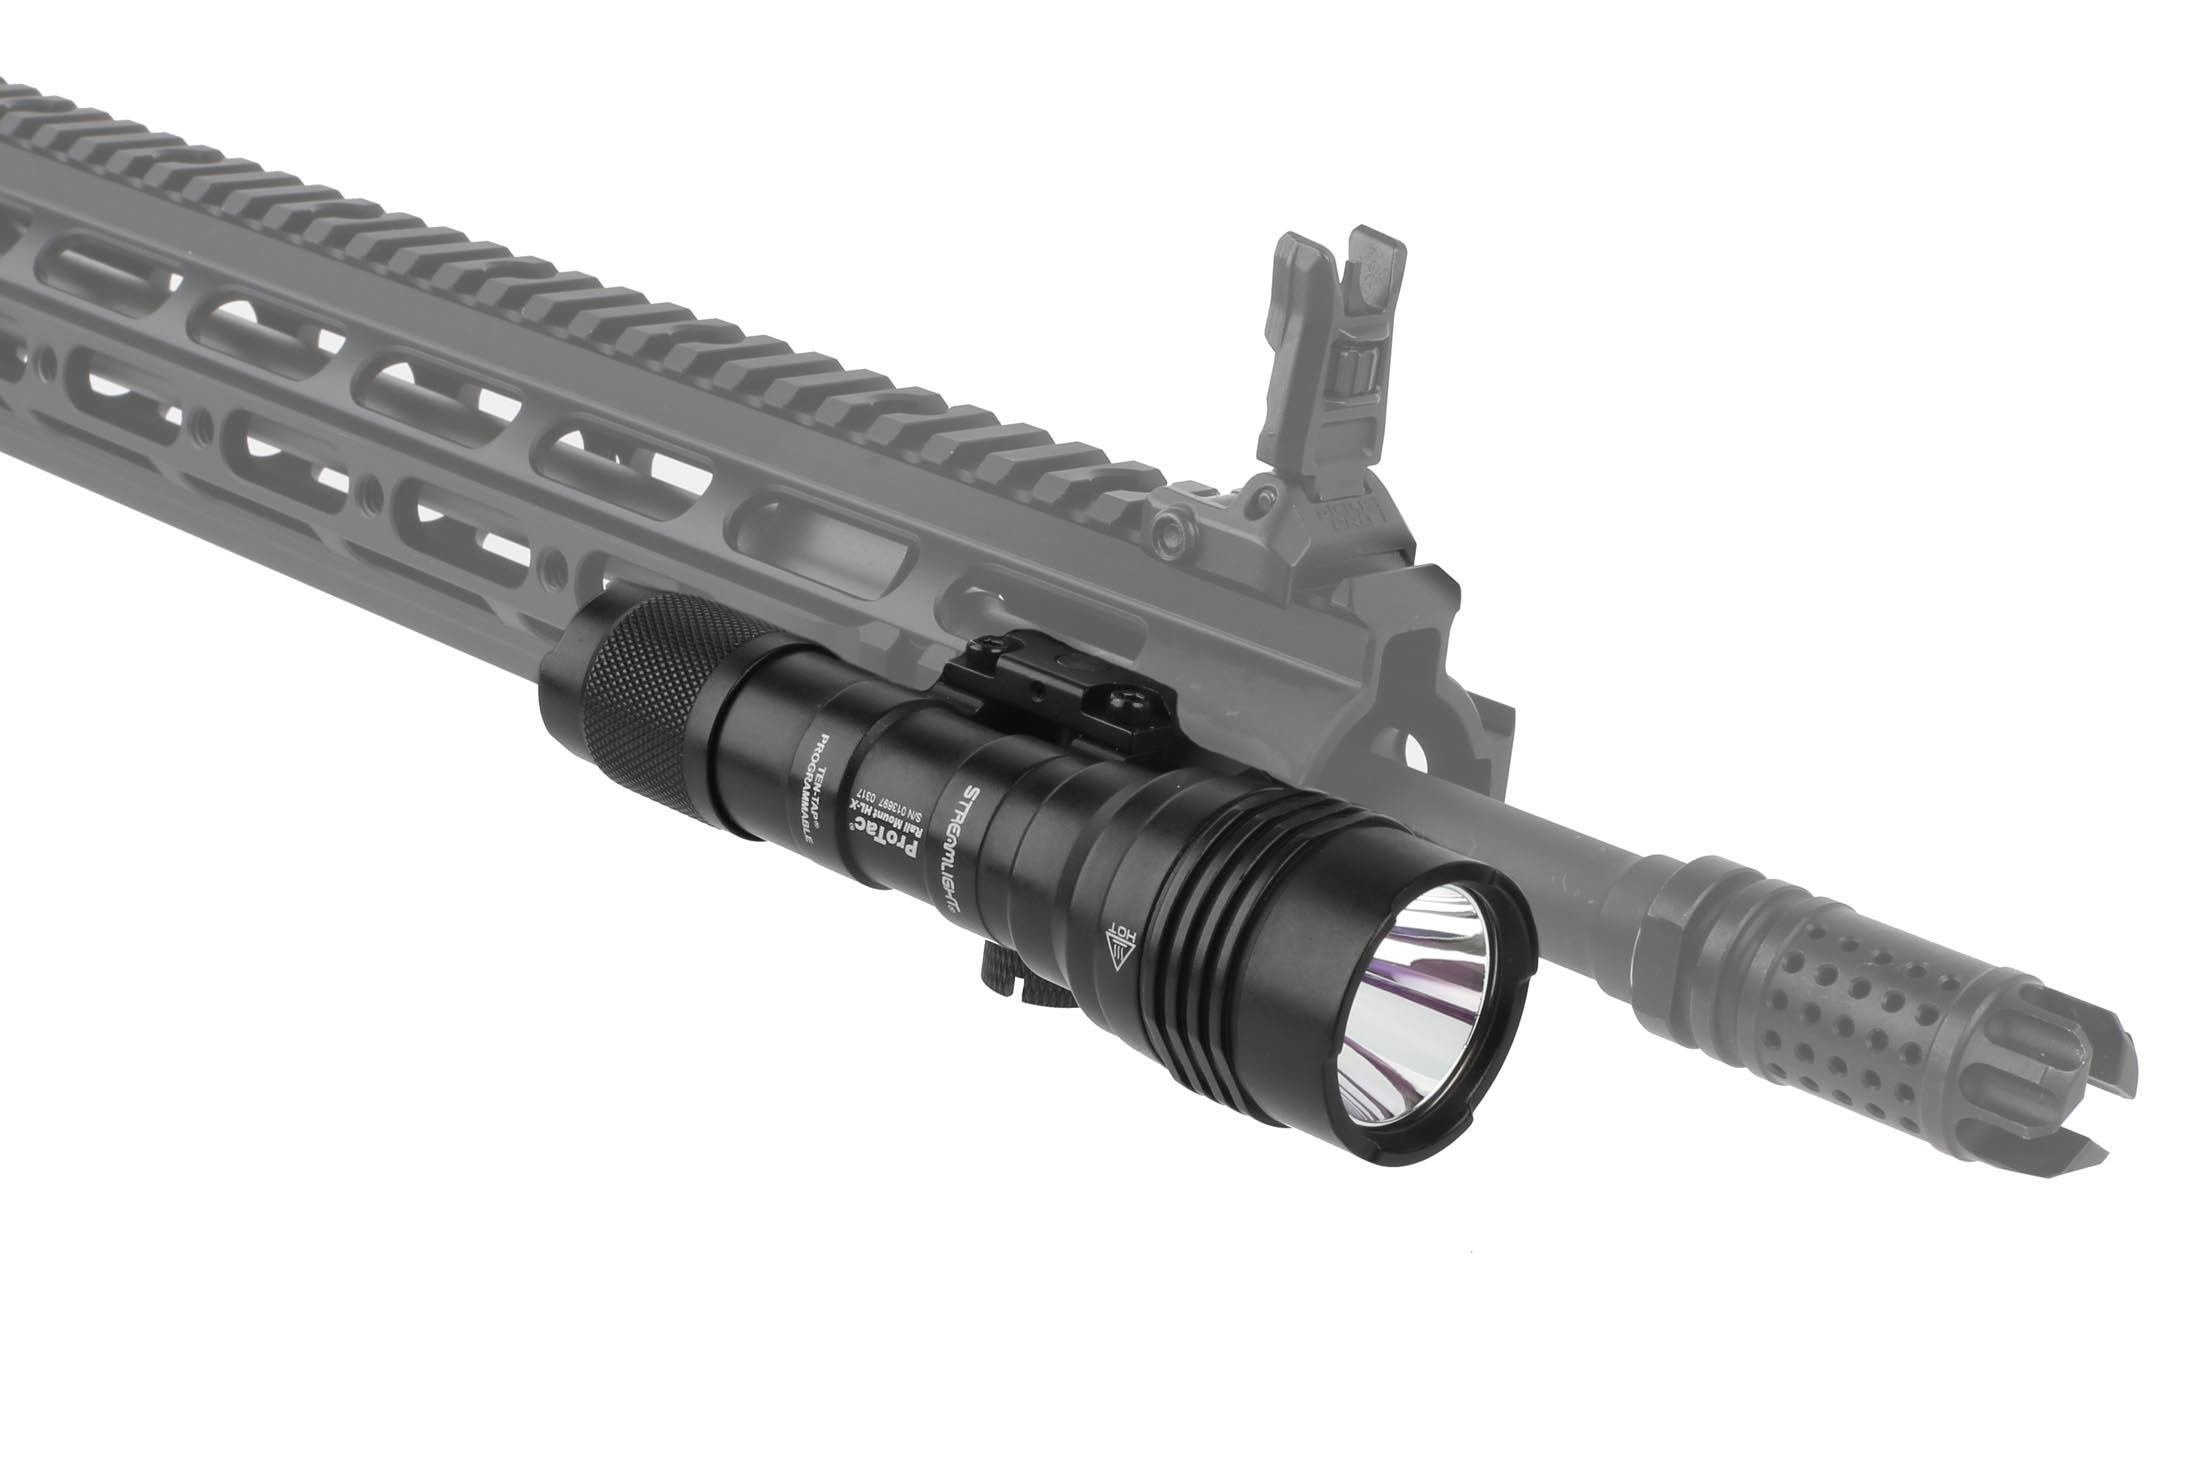 Streamlight ProTac Rail Mount HL-X 1000 Lumen Weapon Light with Tapeswitch